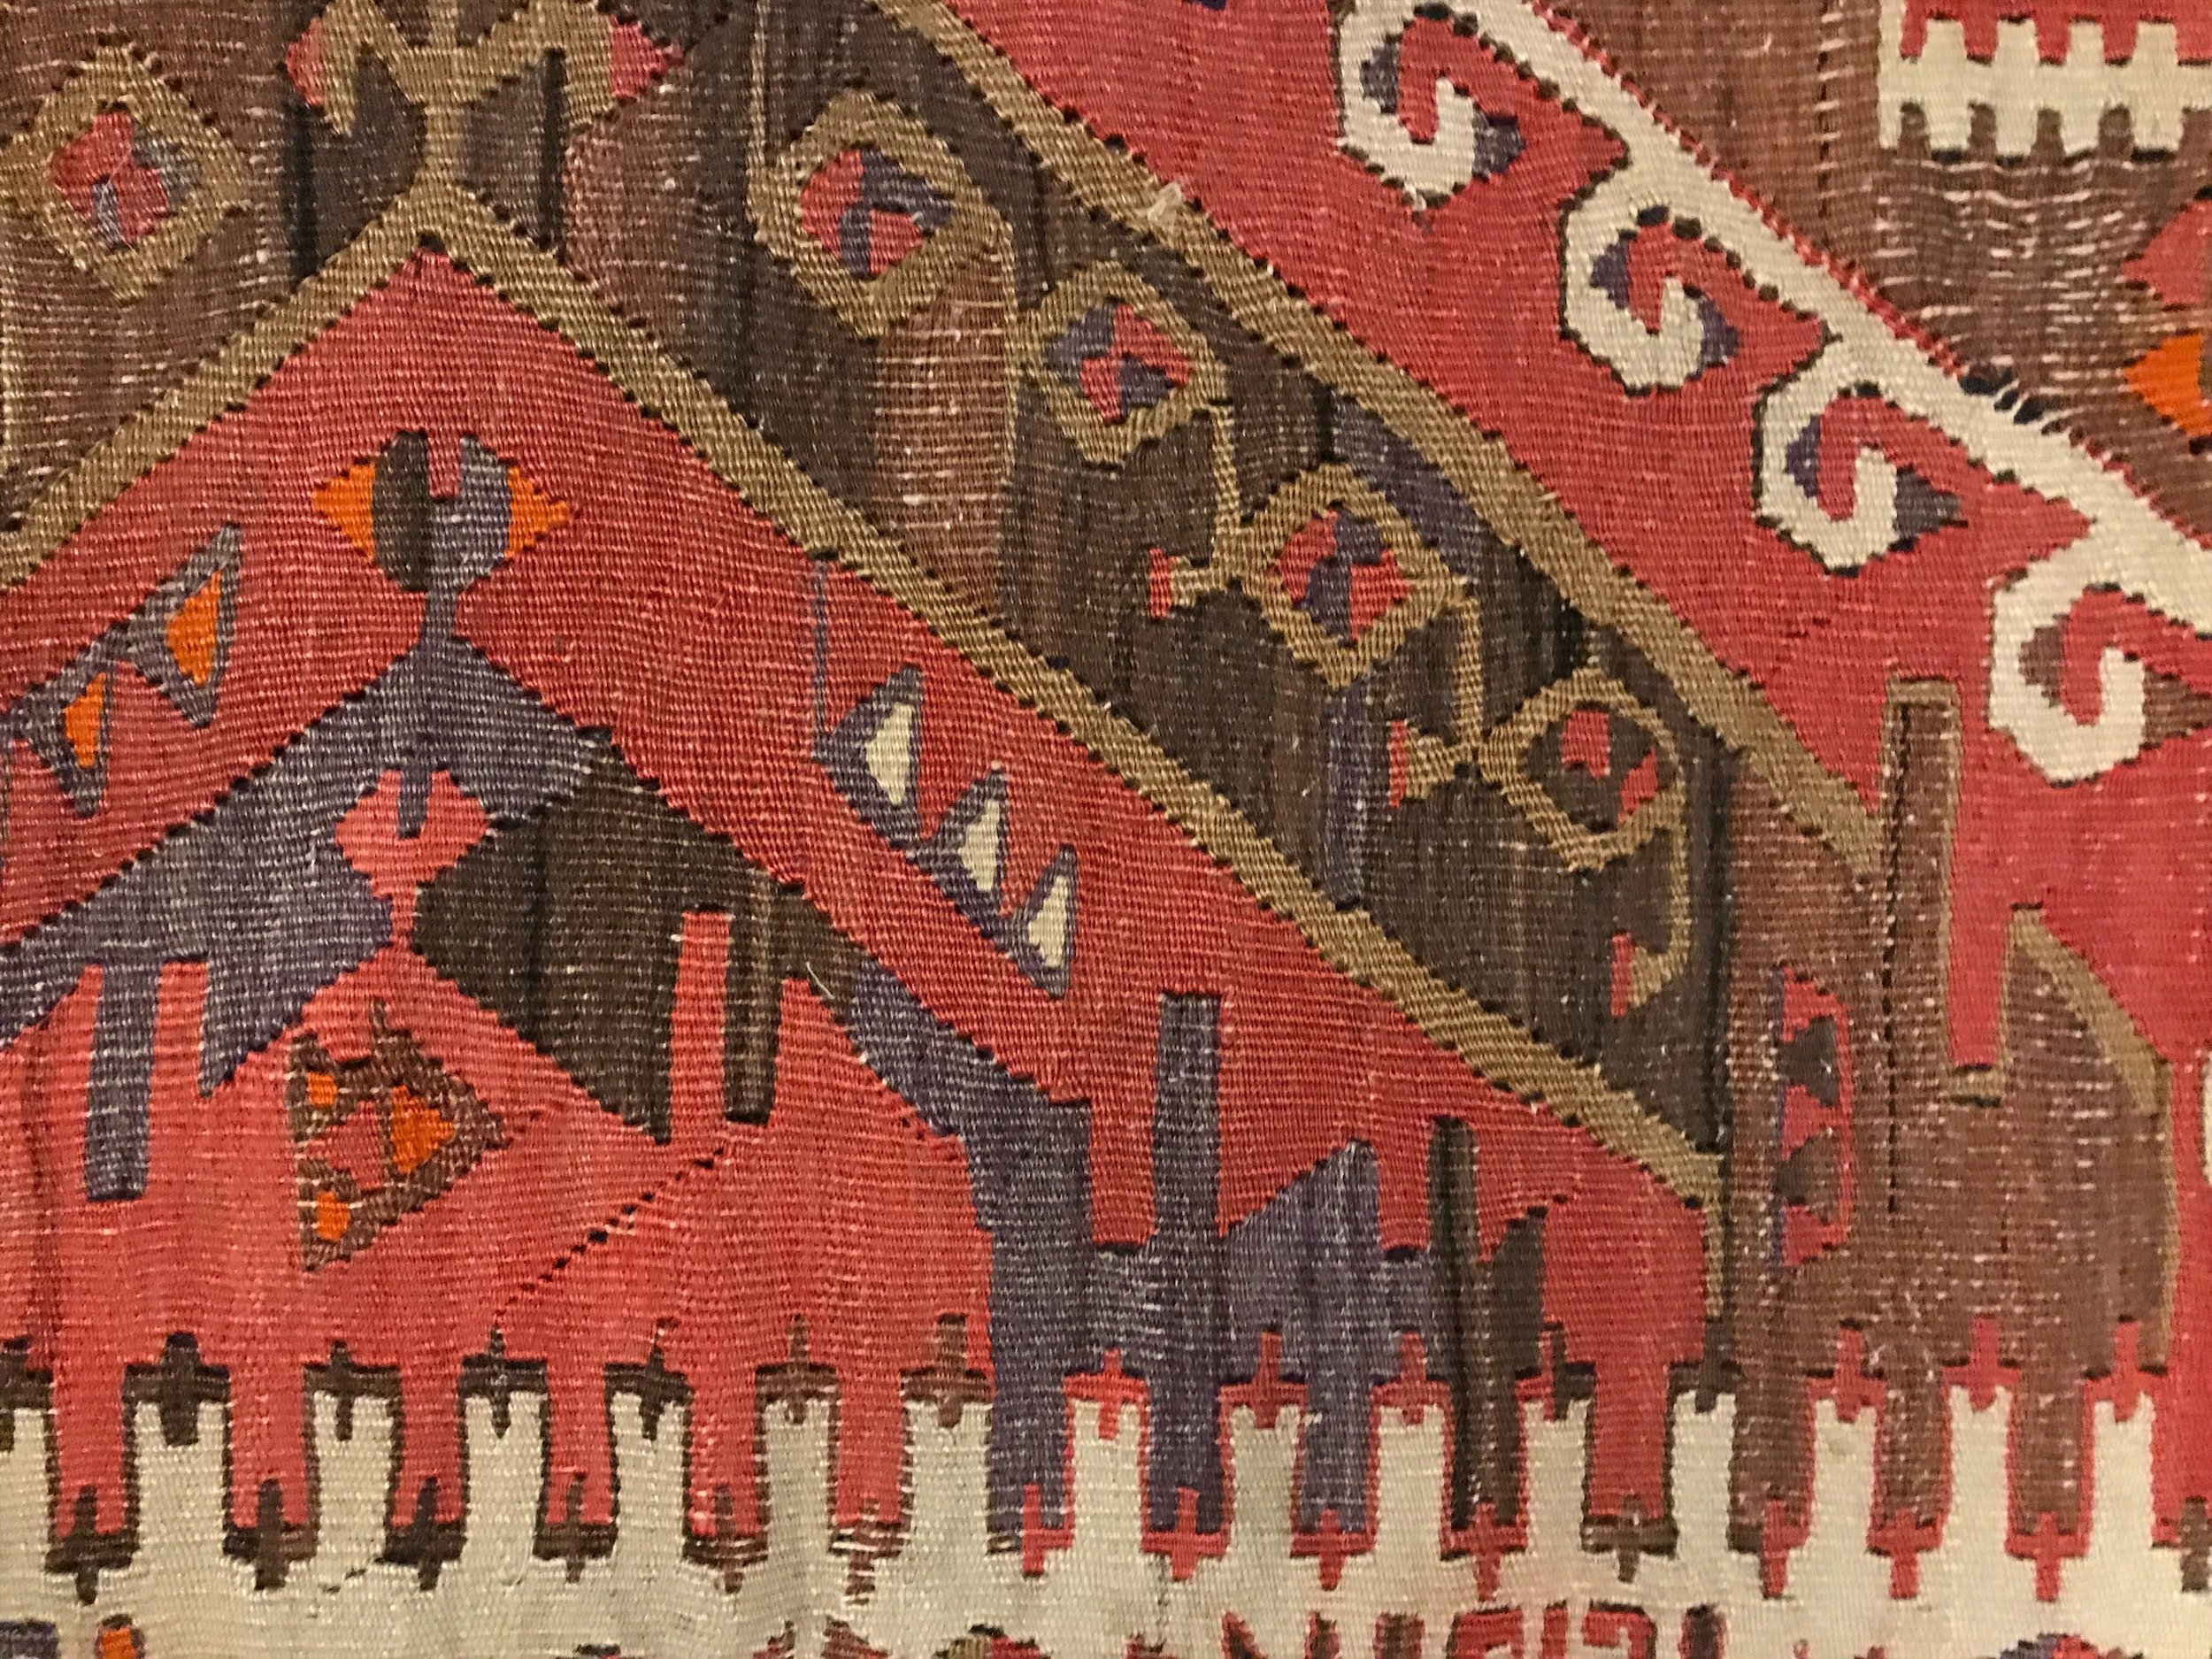 A kilim in the author's home.